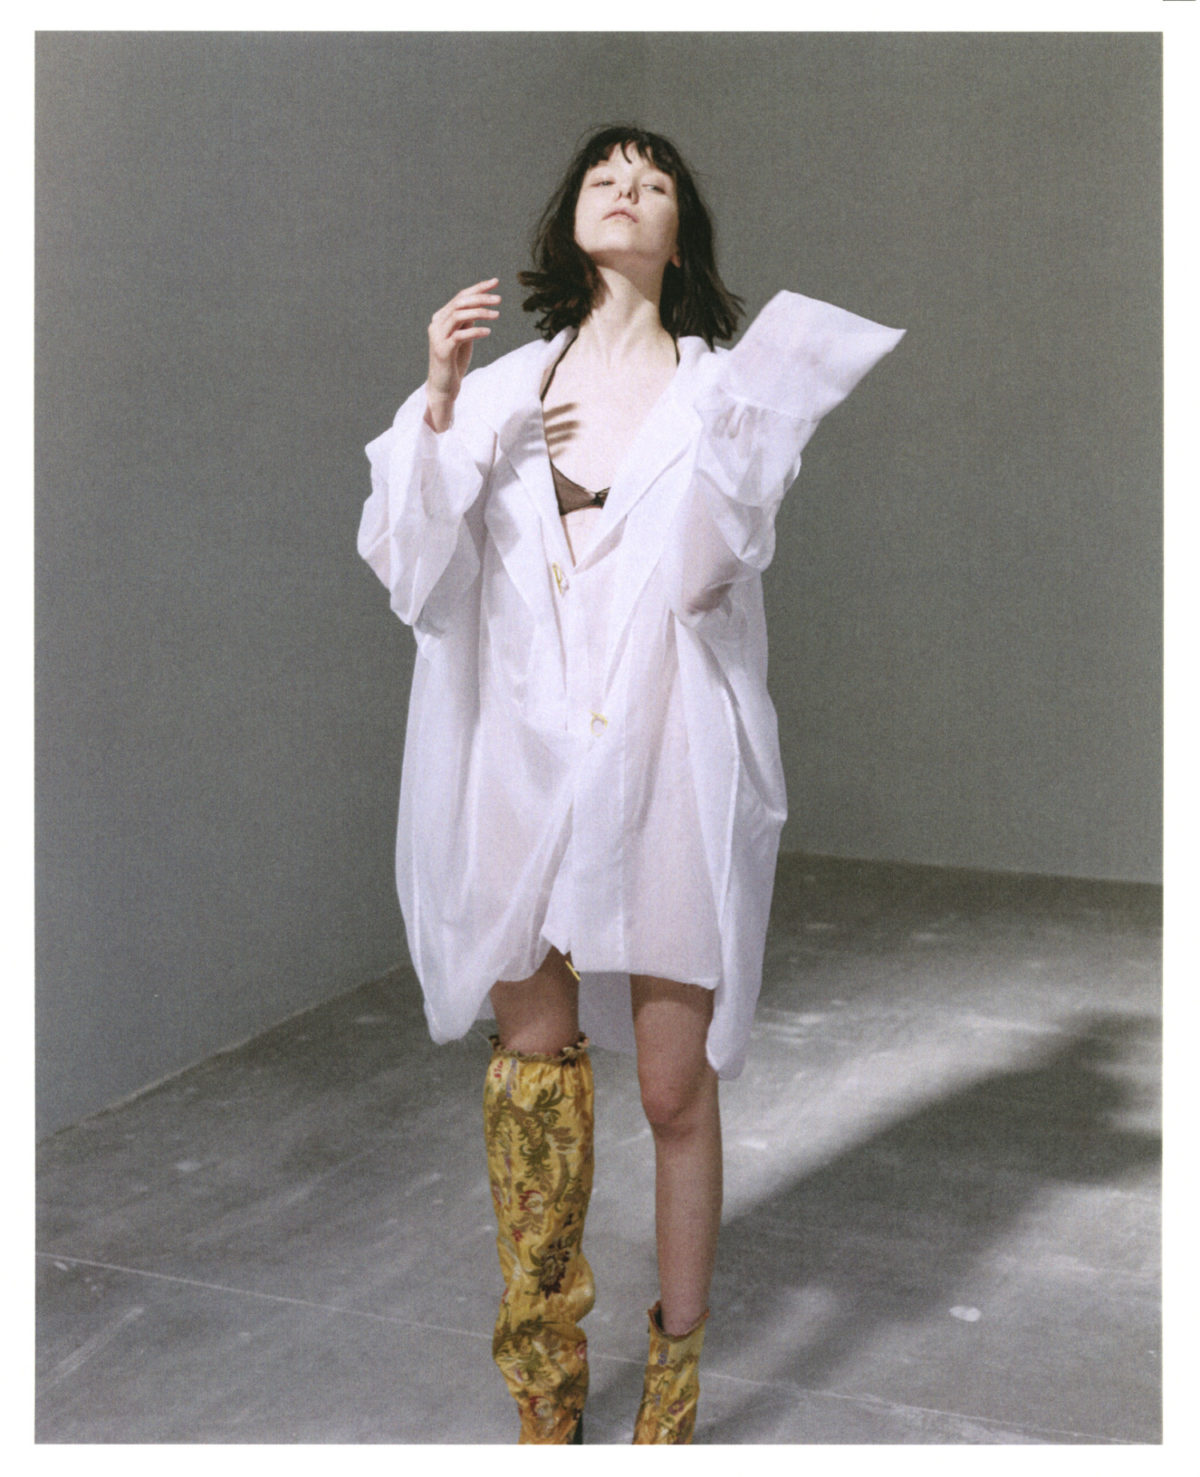 CSM GRADUATE IOANNES' ETHEREAL FIRST COLLECTION